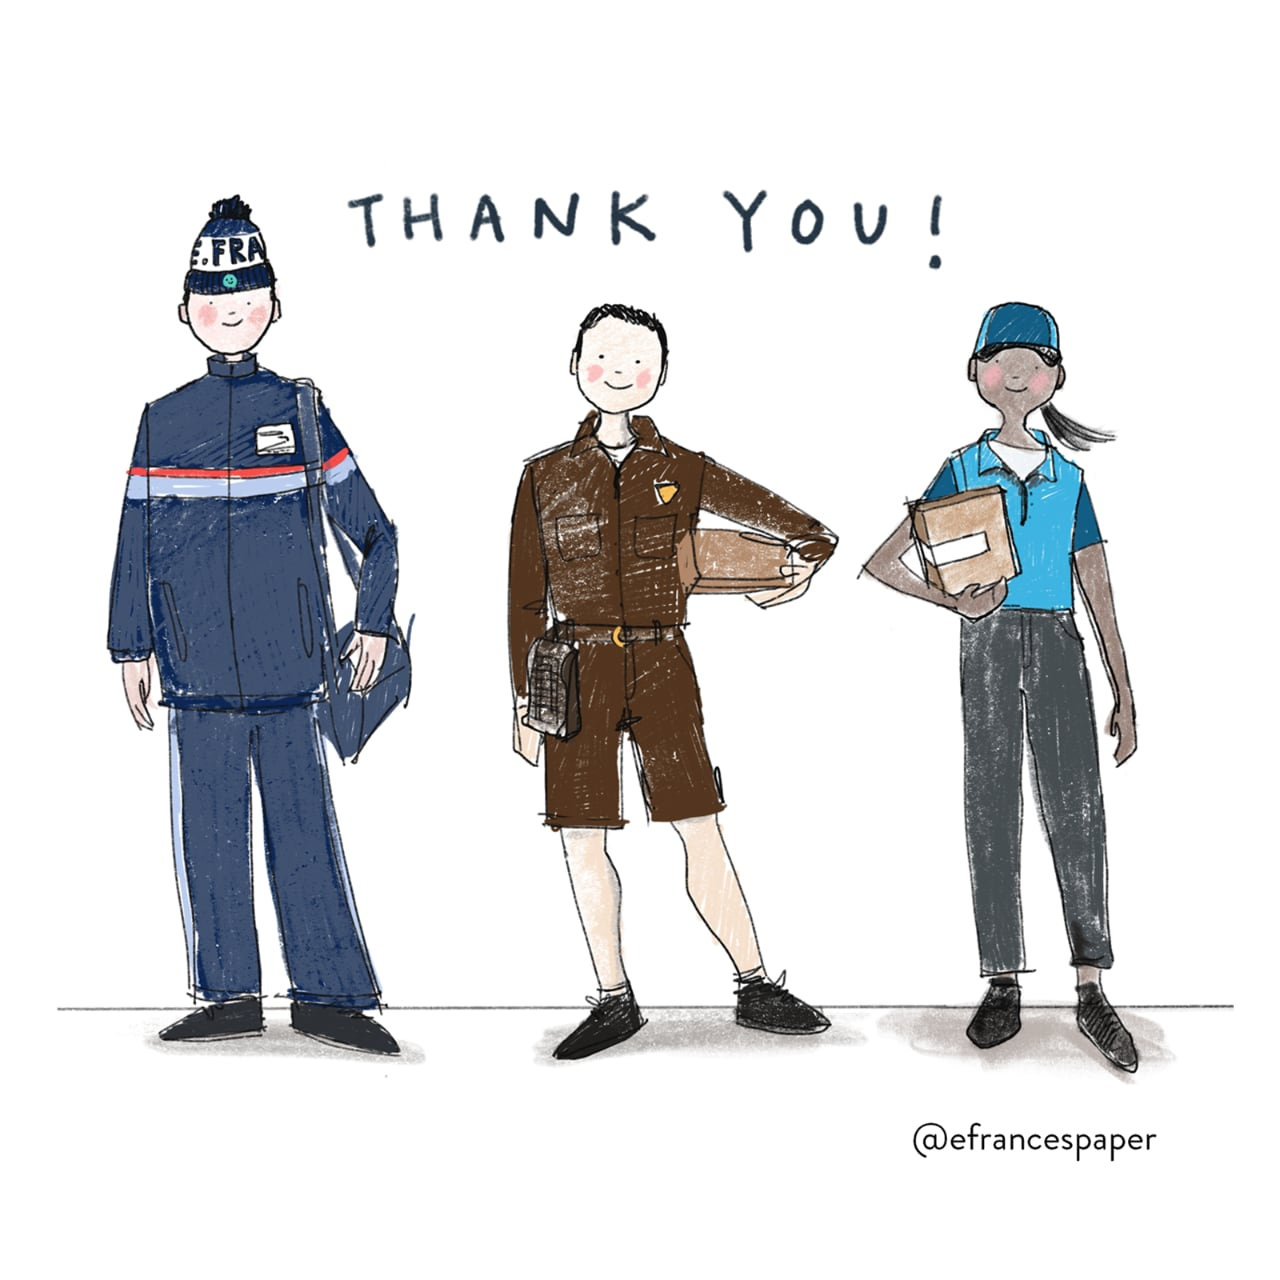 image of artwork of a mailman, a UPS driver, and an amazon driver with the words 'Thank you!' written over them